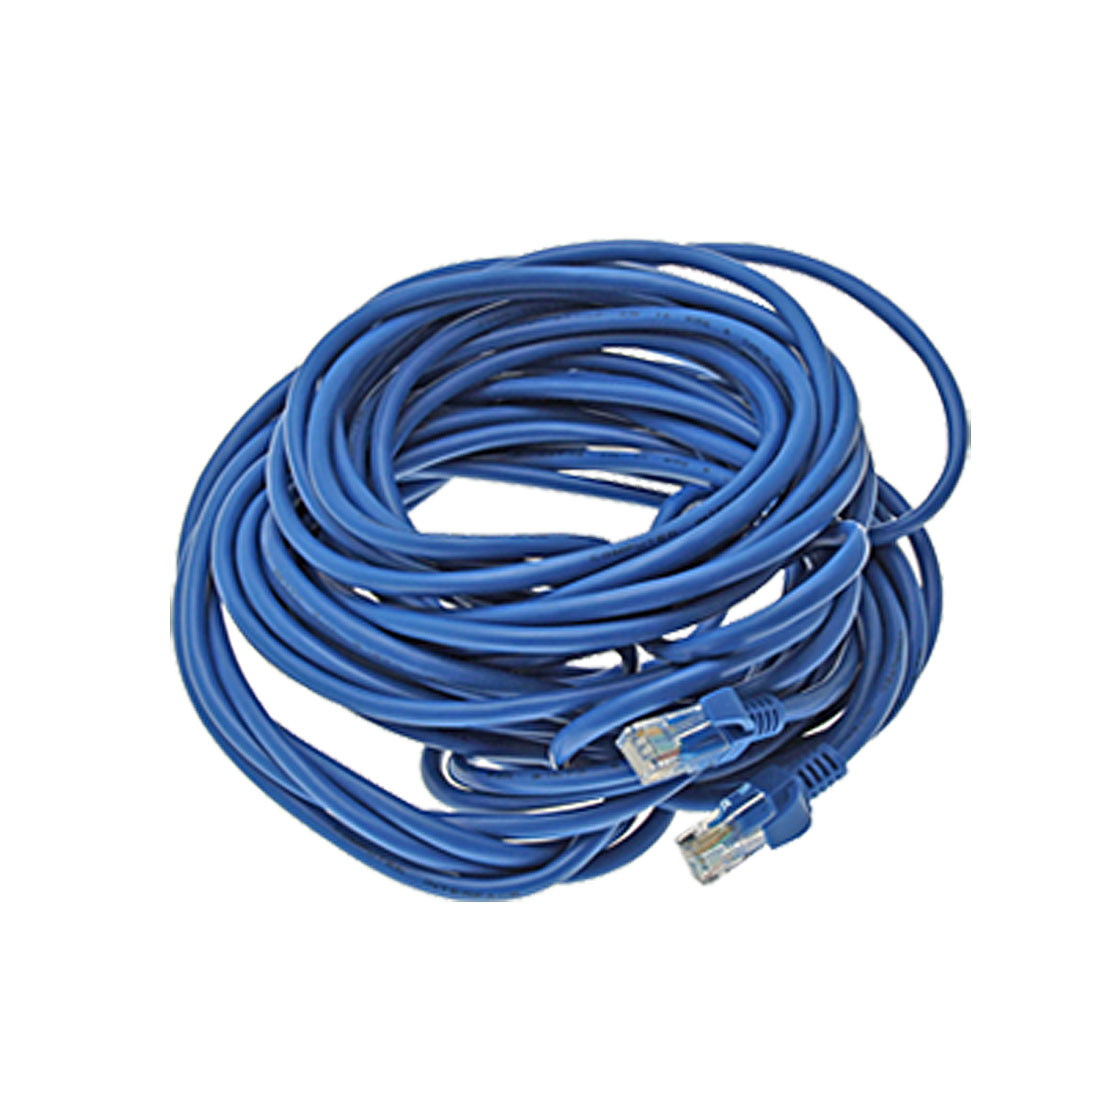 28.7 ft Feet 8.7M RJ45 CAT5E LAN Network Cable Blue for Ethernet Router Switch